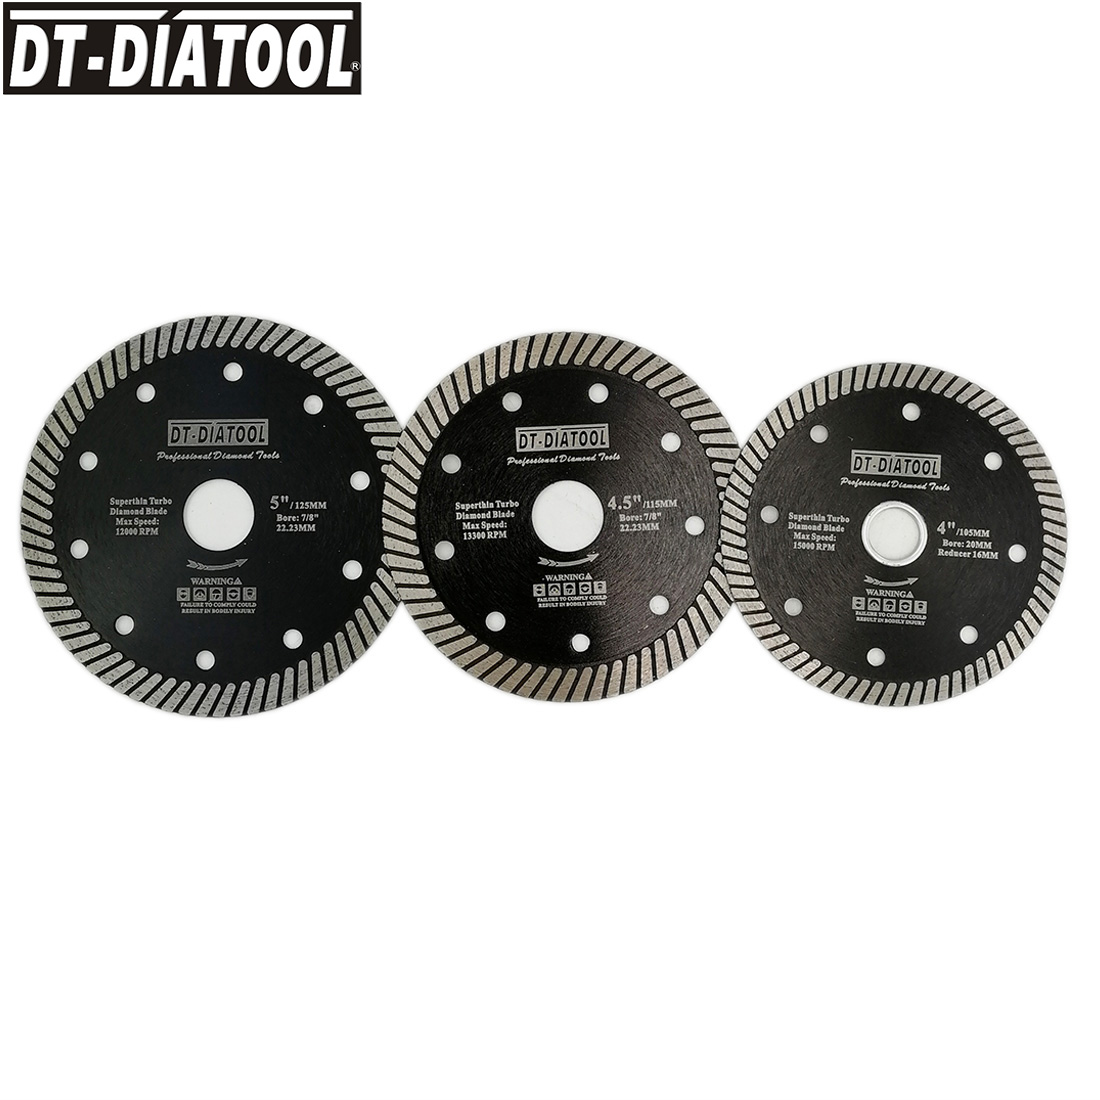 DT-DIATOOL Super-Thin Hot Pressed Turbo Diamond Blade Diamond cutting disc Dia105/115/125mm Grinding wheel Marble Tile Granite diatool 2pcs 4 5 115mm hot pressed continue rim cutting diamond blade ceramic tile sawblade thin cutting disc diamond wheel